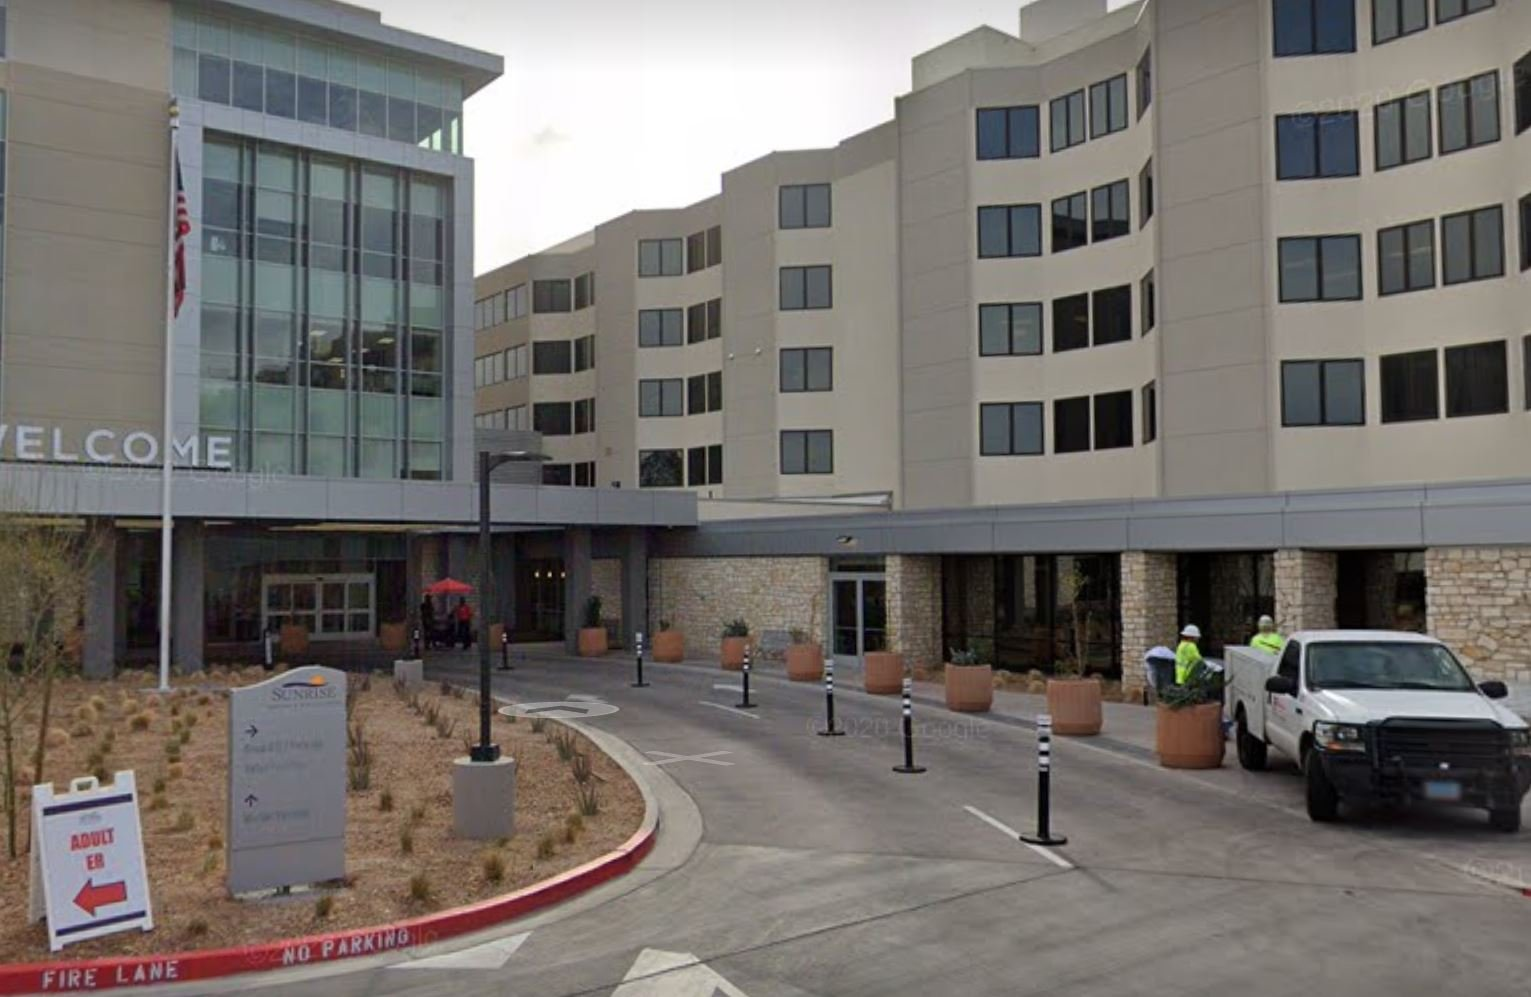 COVID-19: At least 8 fully vaccinated Vegas hospital workers test positive in 'breakthrough' cluster